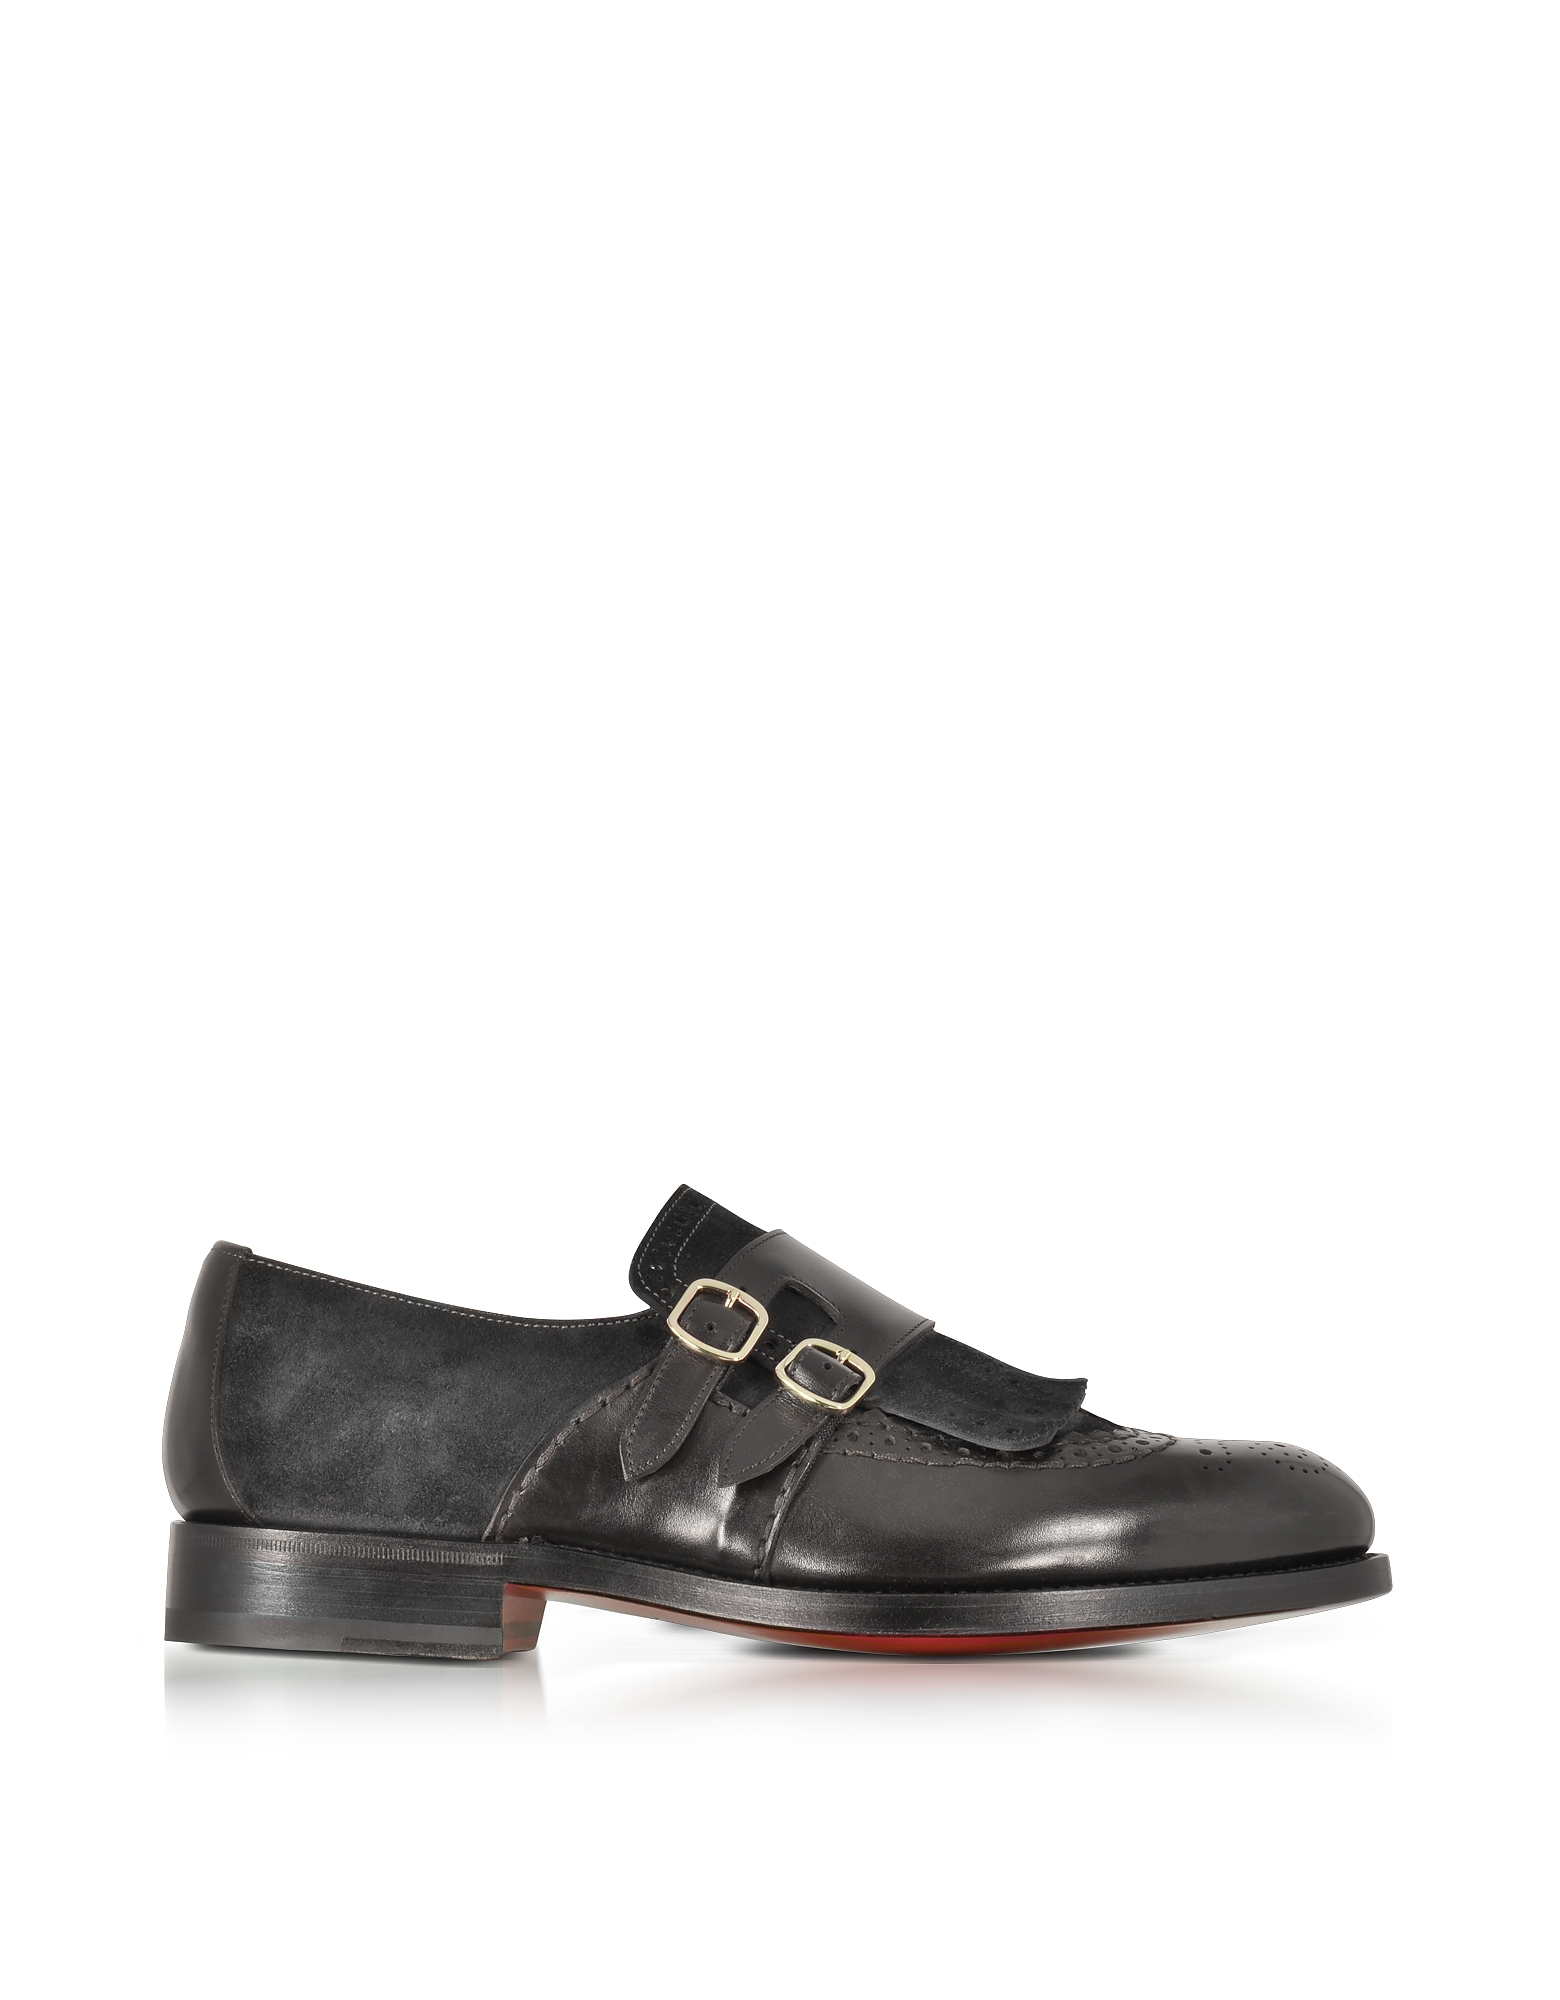 Santoni Shoes, Dark Brown Suede and Leather Double Monk Strap Shoes